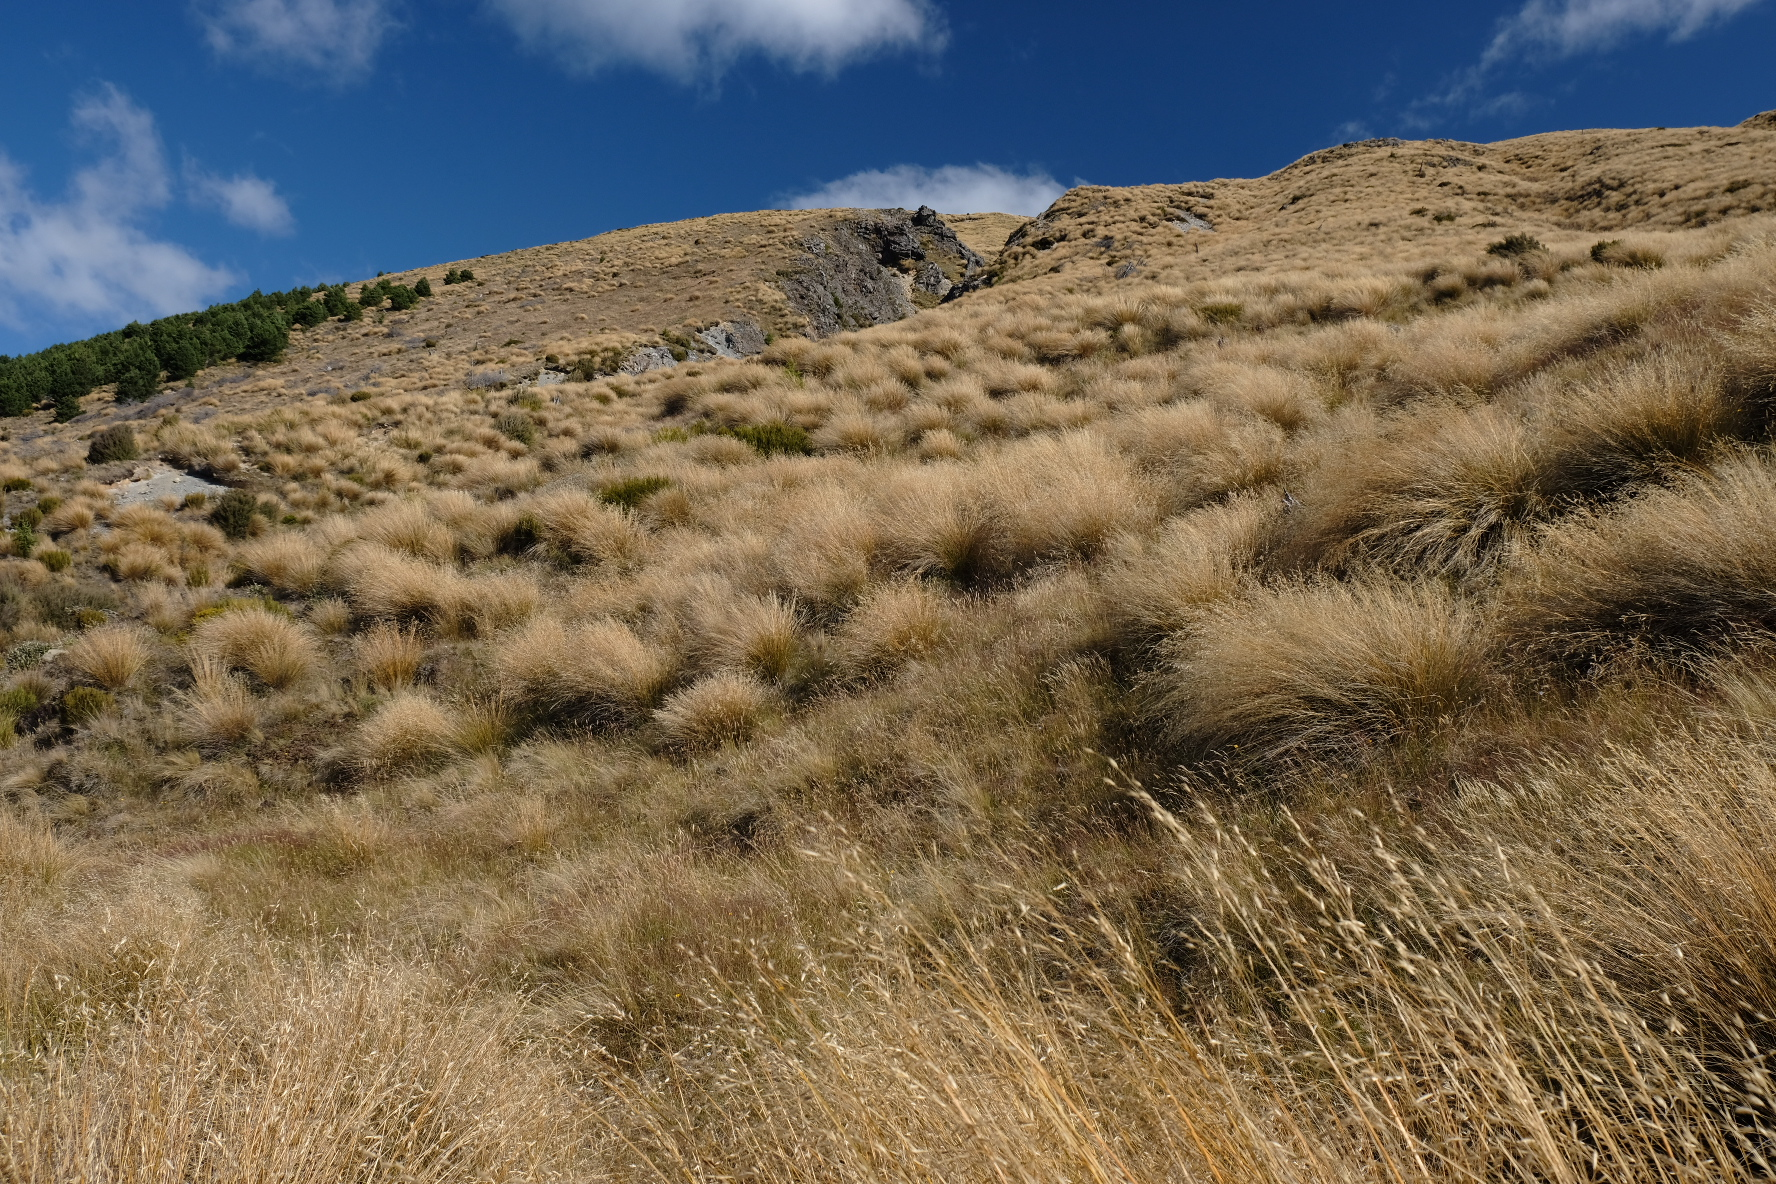 Tussock - a near constant companion in the next section